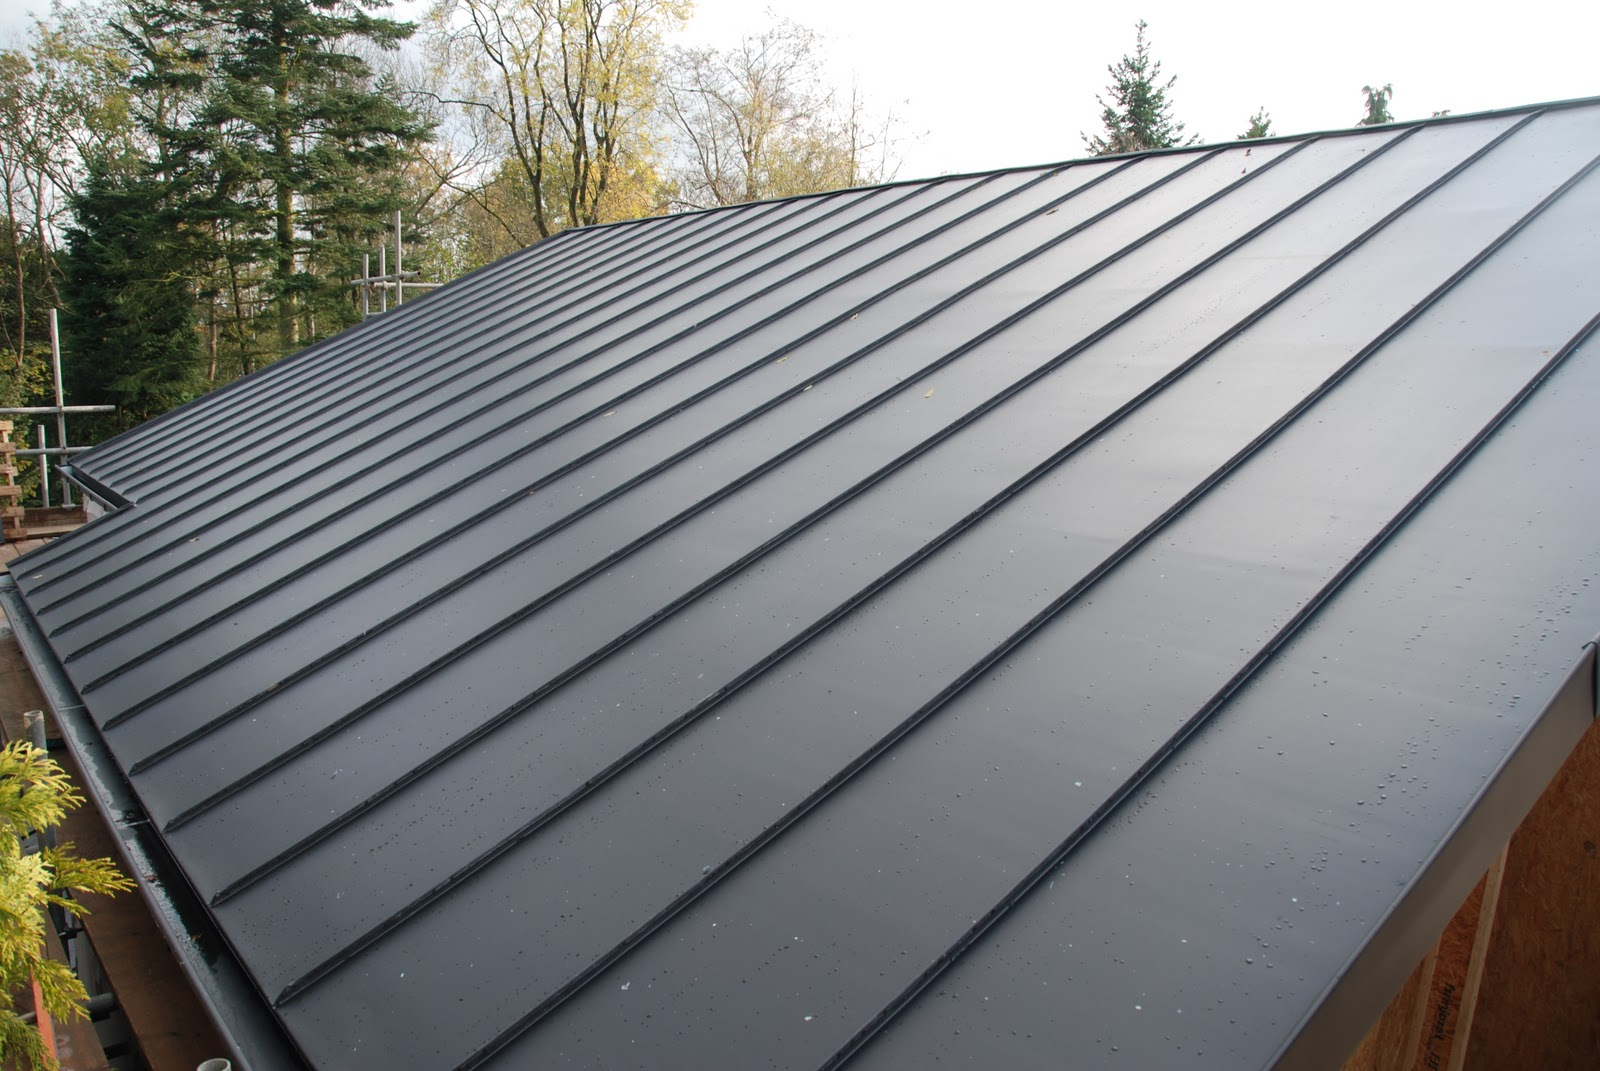 Flat Roof Fix Modern House Build In Surrey: Day 143 - Zinc roof and ...